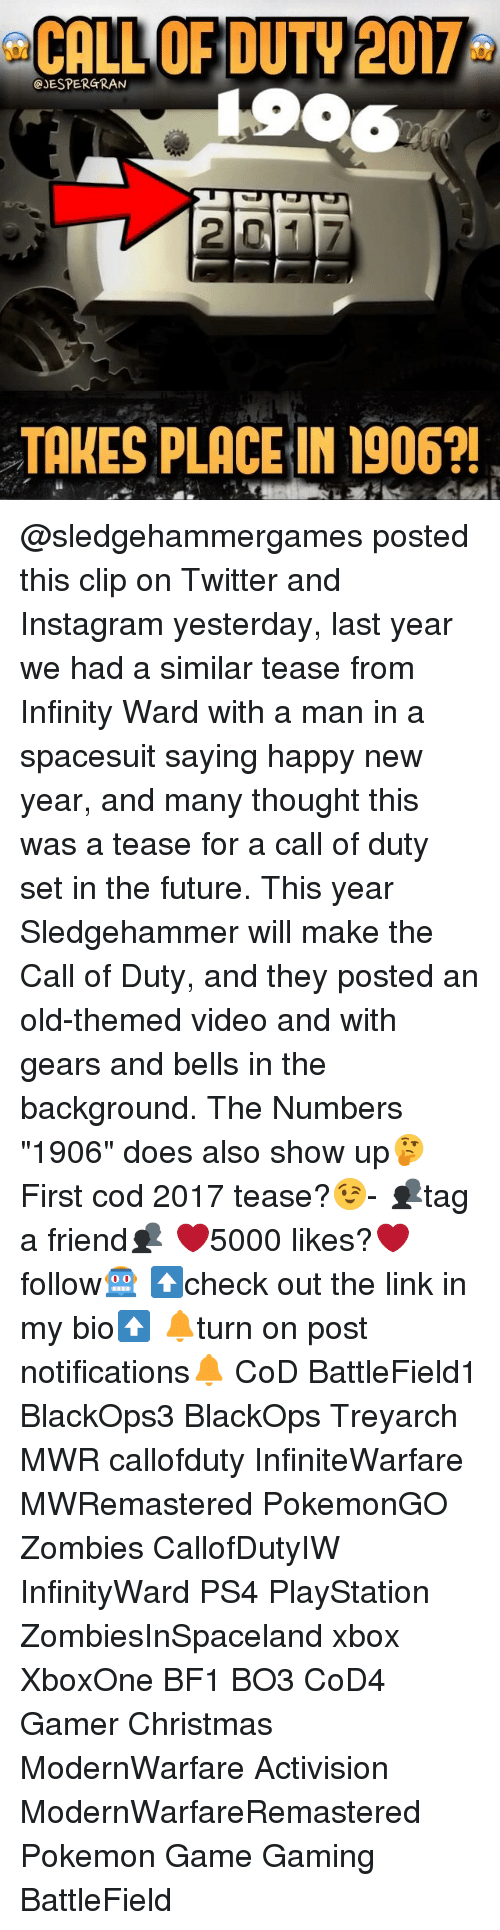 """pokemon games: CALL OF DUTY 2017  GJESPERGRAN  TAKES PLACE IN 1906?! @sledgehammergames posted this clip on Twitter and Instagram yesterday, last year we had a similar tease from Infinity Ward with a man in a spacesuit saying happy new year, and many thought this was a tease for a call of duty set in the future. This year Sledgehammer will make the Call of Duty, and they posted an old-themed video and with gears and bells in the background. The Numbers """"1906"""" does also show up🤔 First cod 2017 tease?😉- 👥tag a friend👥 ❤️5000 likes?❤️ follow🤖 ⬆️check out the link in my bio⬆️ 🔔turn on post notifications🔔 CoD BattleField1 BlackOps3 BlackOps Treyarch MWR callofduty InfiniteWarfare MWRemastered PokemonGO Zombies CallofDutyIW InfinityWard PS4 PlayStation ZombiesInSpaceland xbox XboxOne BF1 BO3 CoD4 Gamer Christmas ModernWarfare Activision ModernWarfareRemastered Pokemon Game Gaming BattleField"""